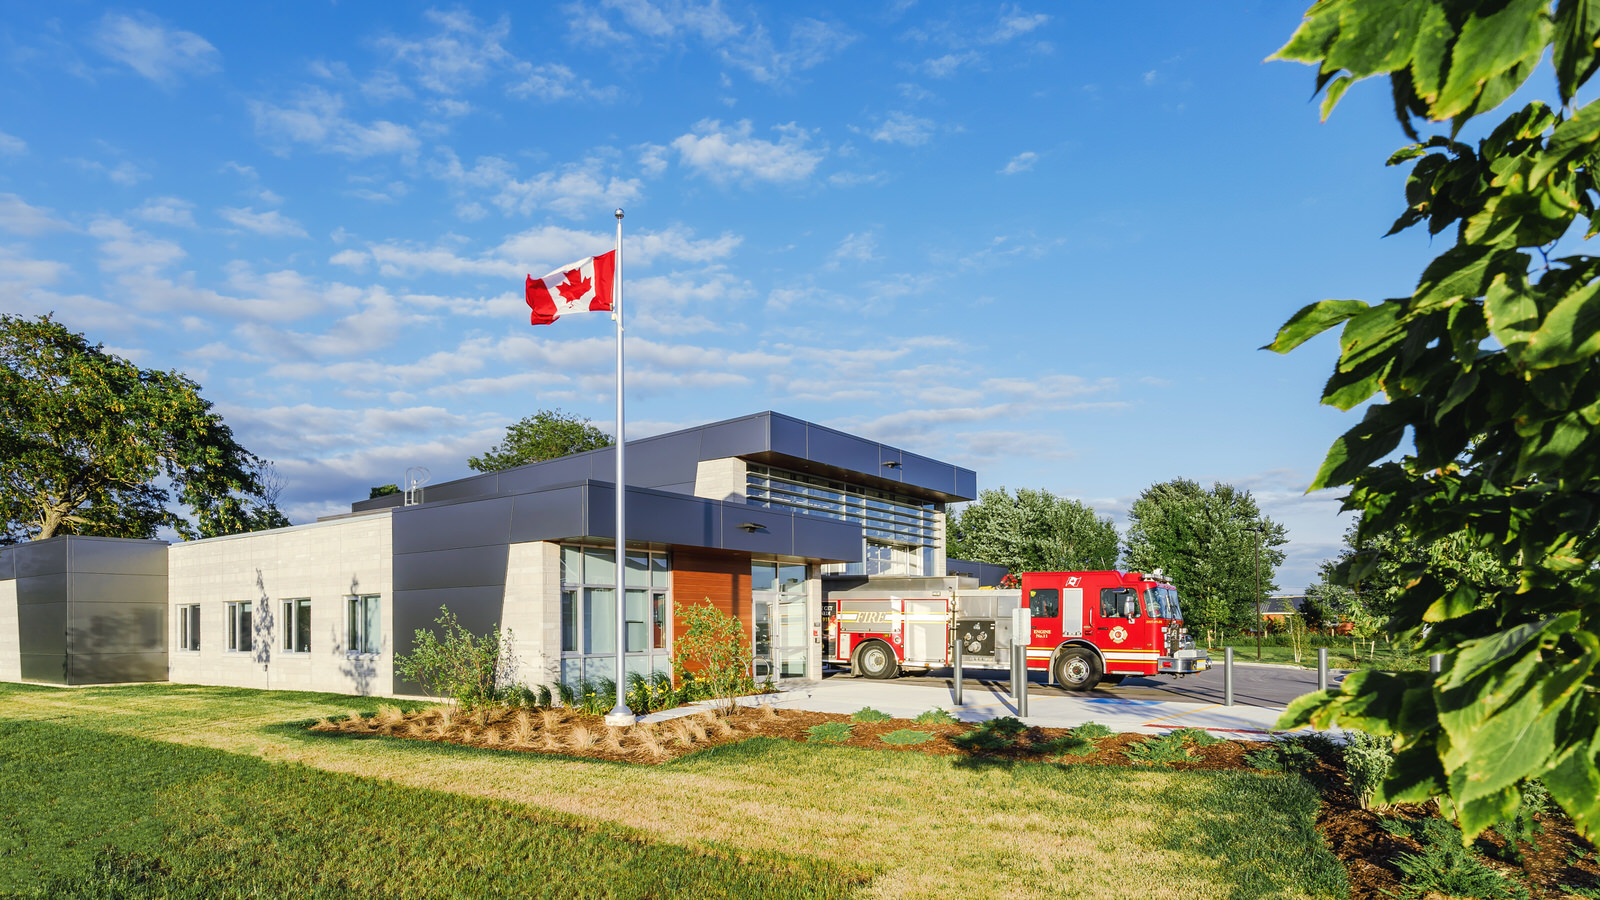 Architecture photography of the No.11 Fire Station in London, Ontario